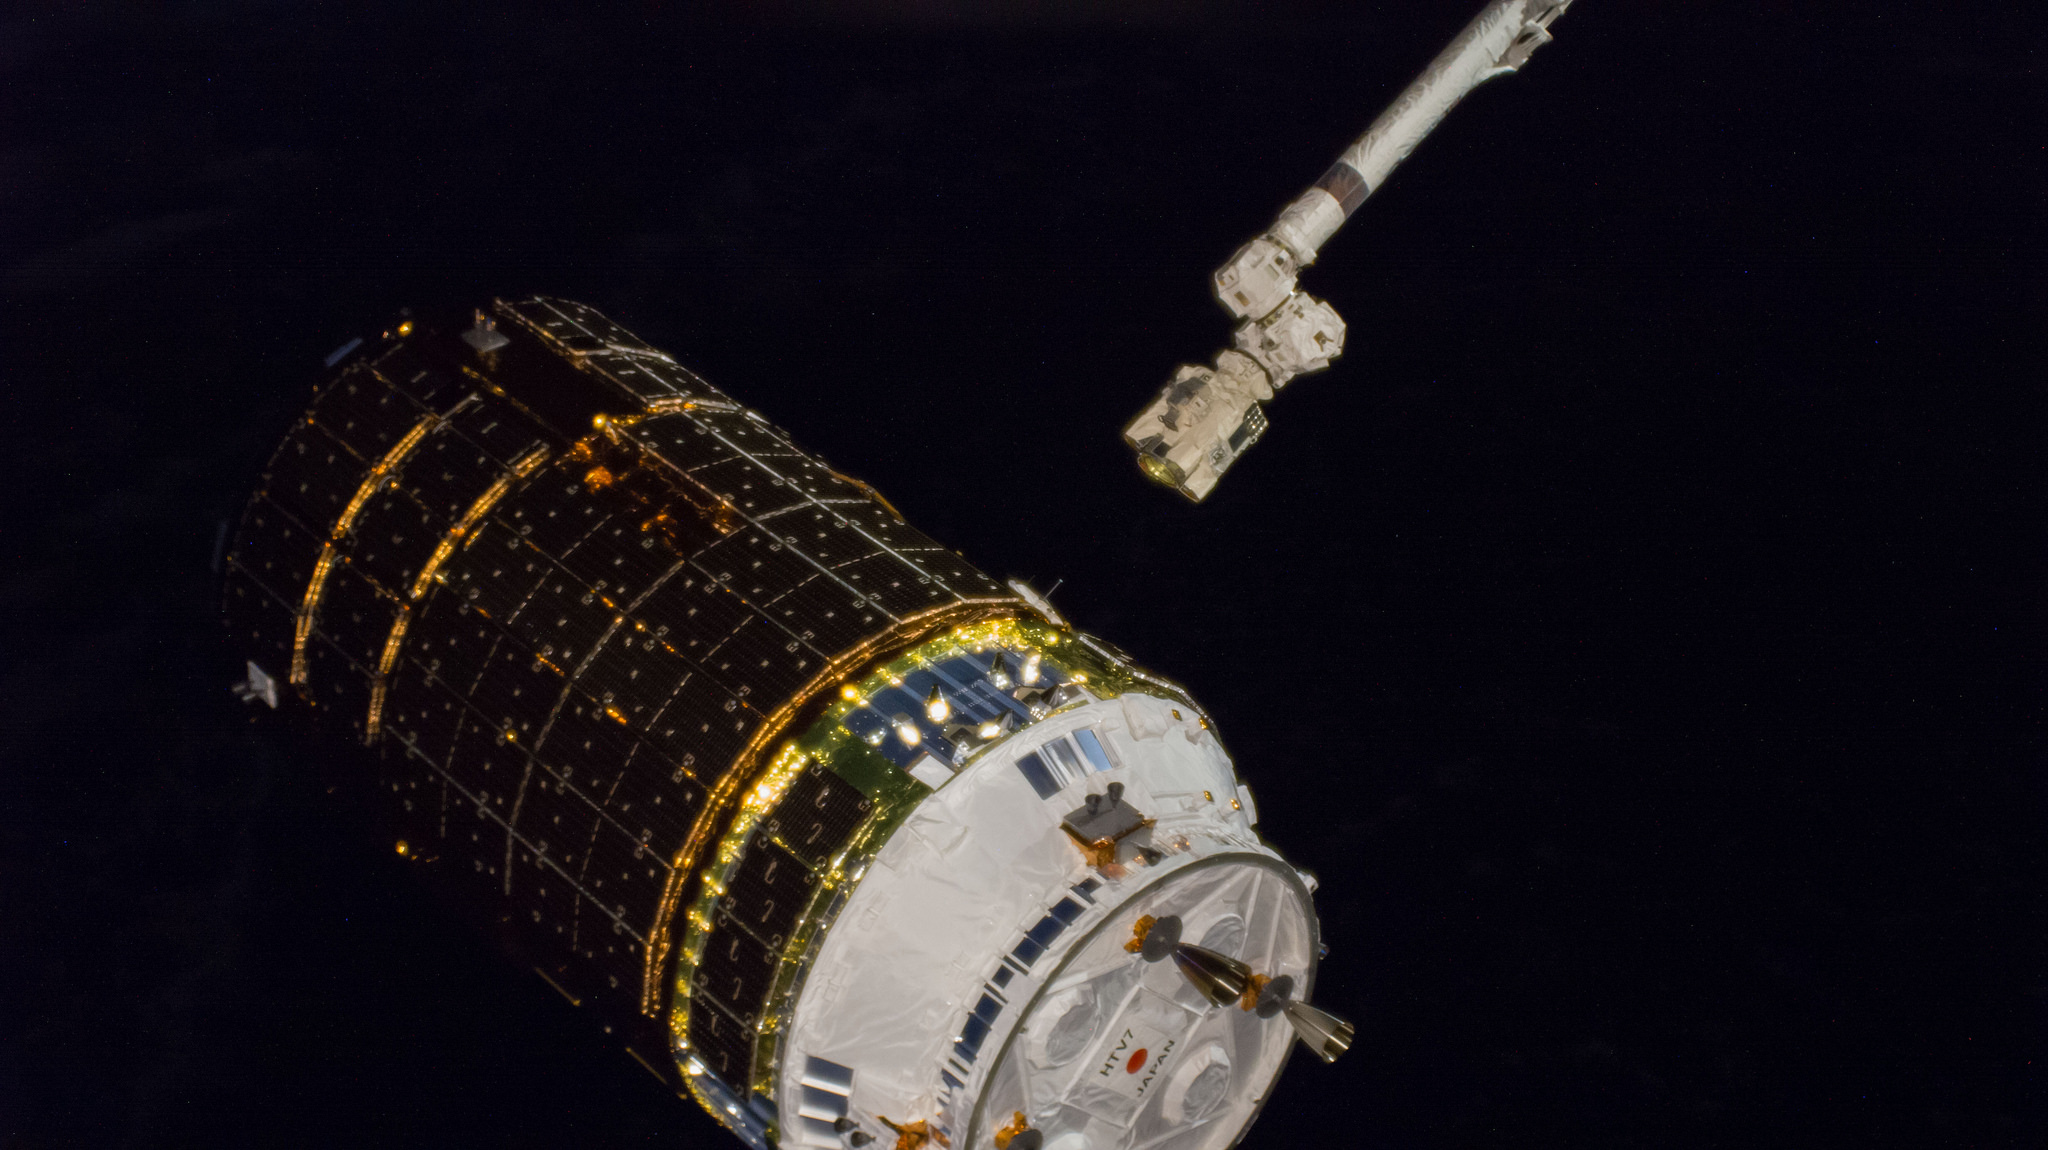 The robotic Canadarm2 nears the grapple fixture of the Kounotori 7 spacecraft to capture the free-flying vessel. Credit: NASA